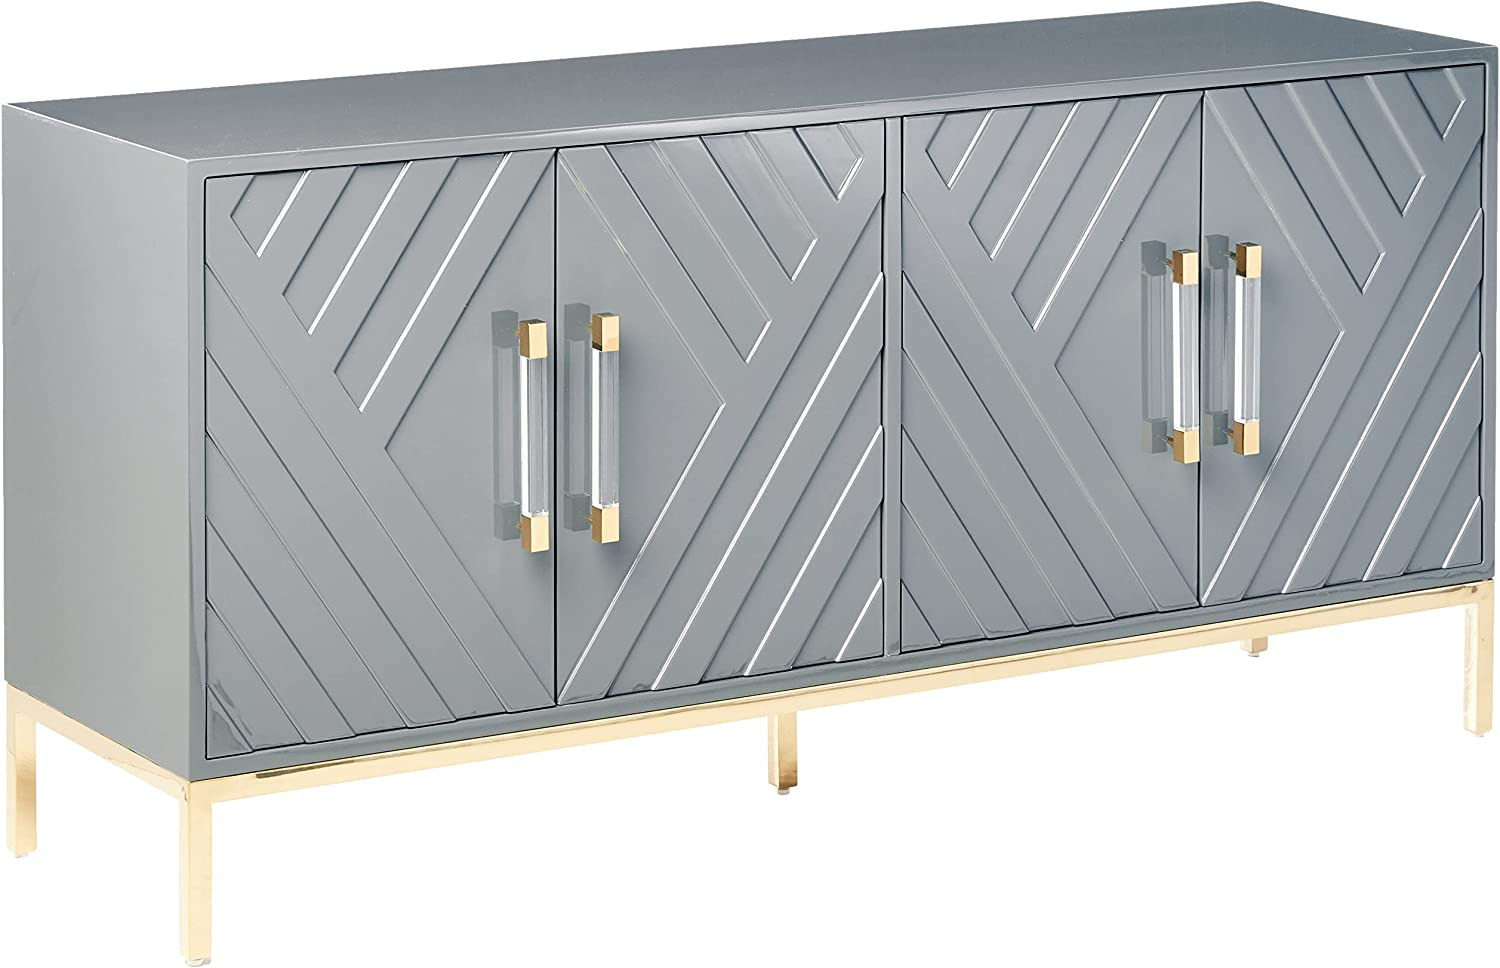 Special price for a limited time Best Master Furniture Tamari High Gloss Buffet Lacquer safety Sideboard